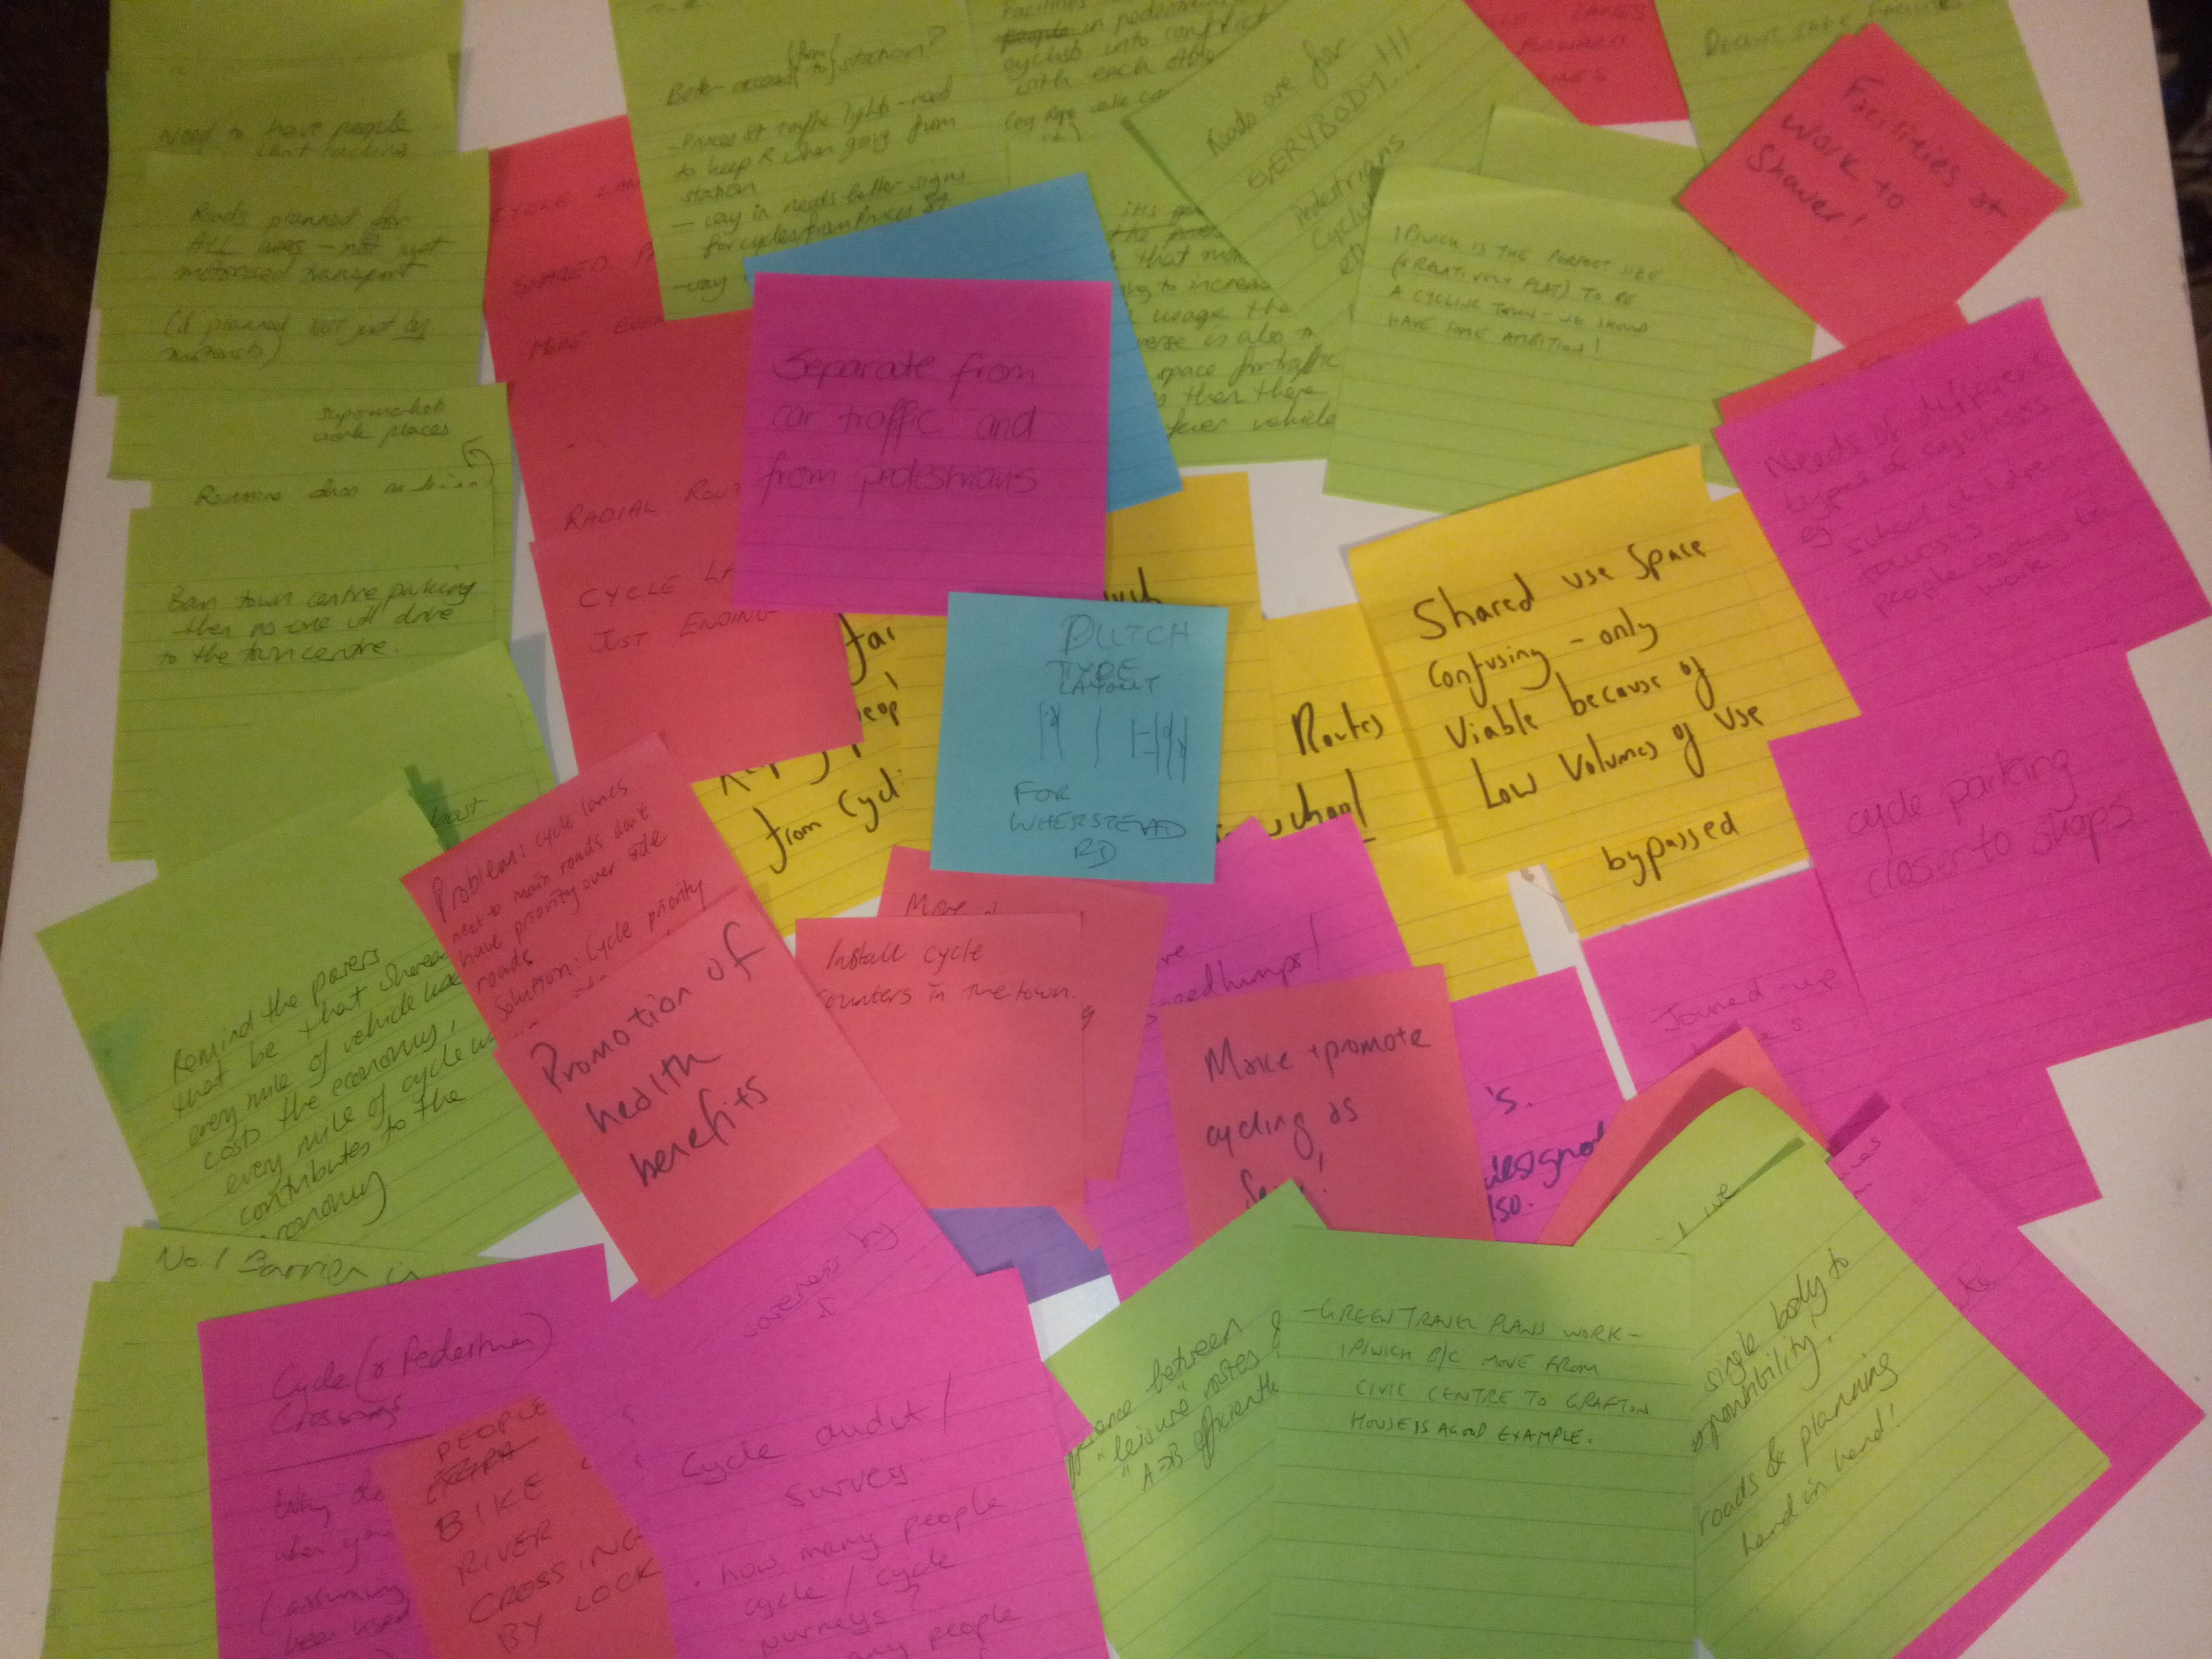 Post-its from the public meeting